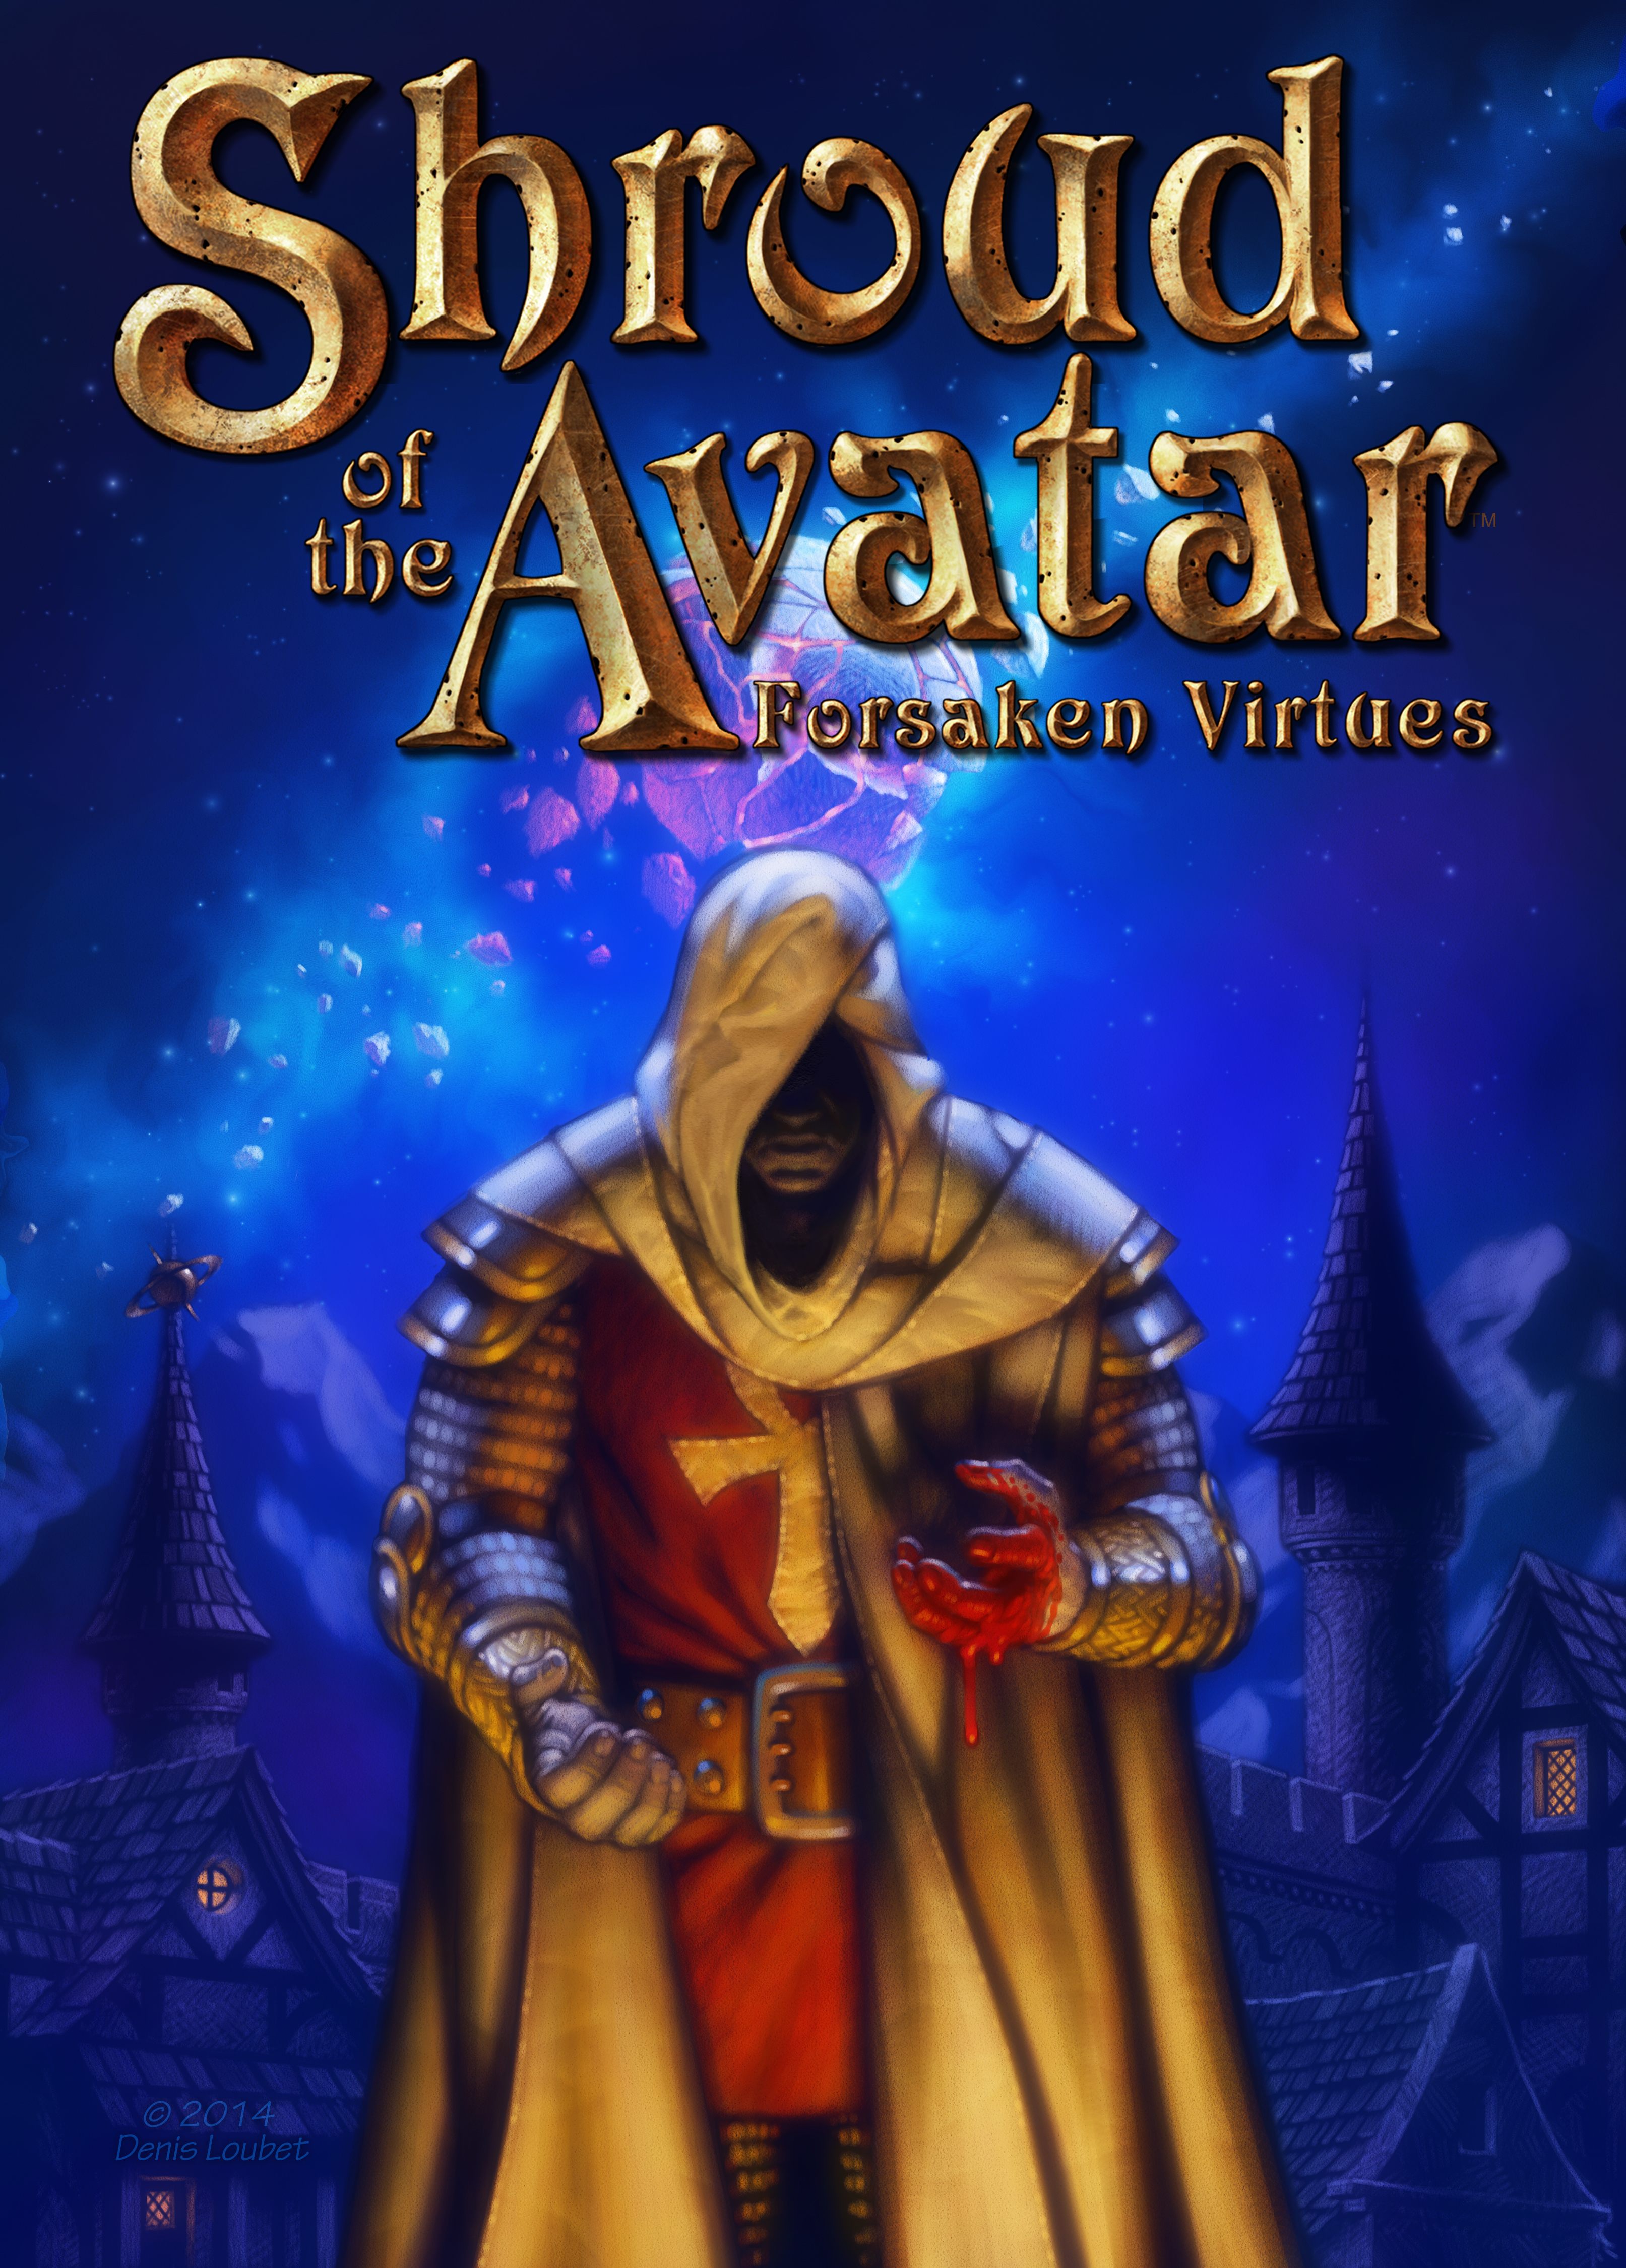 As Richard Garriott's new RPG approaches $6M, he eyes a 2015 full release and book trilogy [correction]